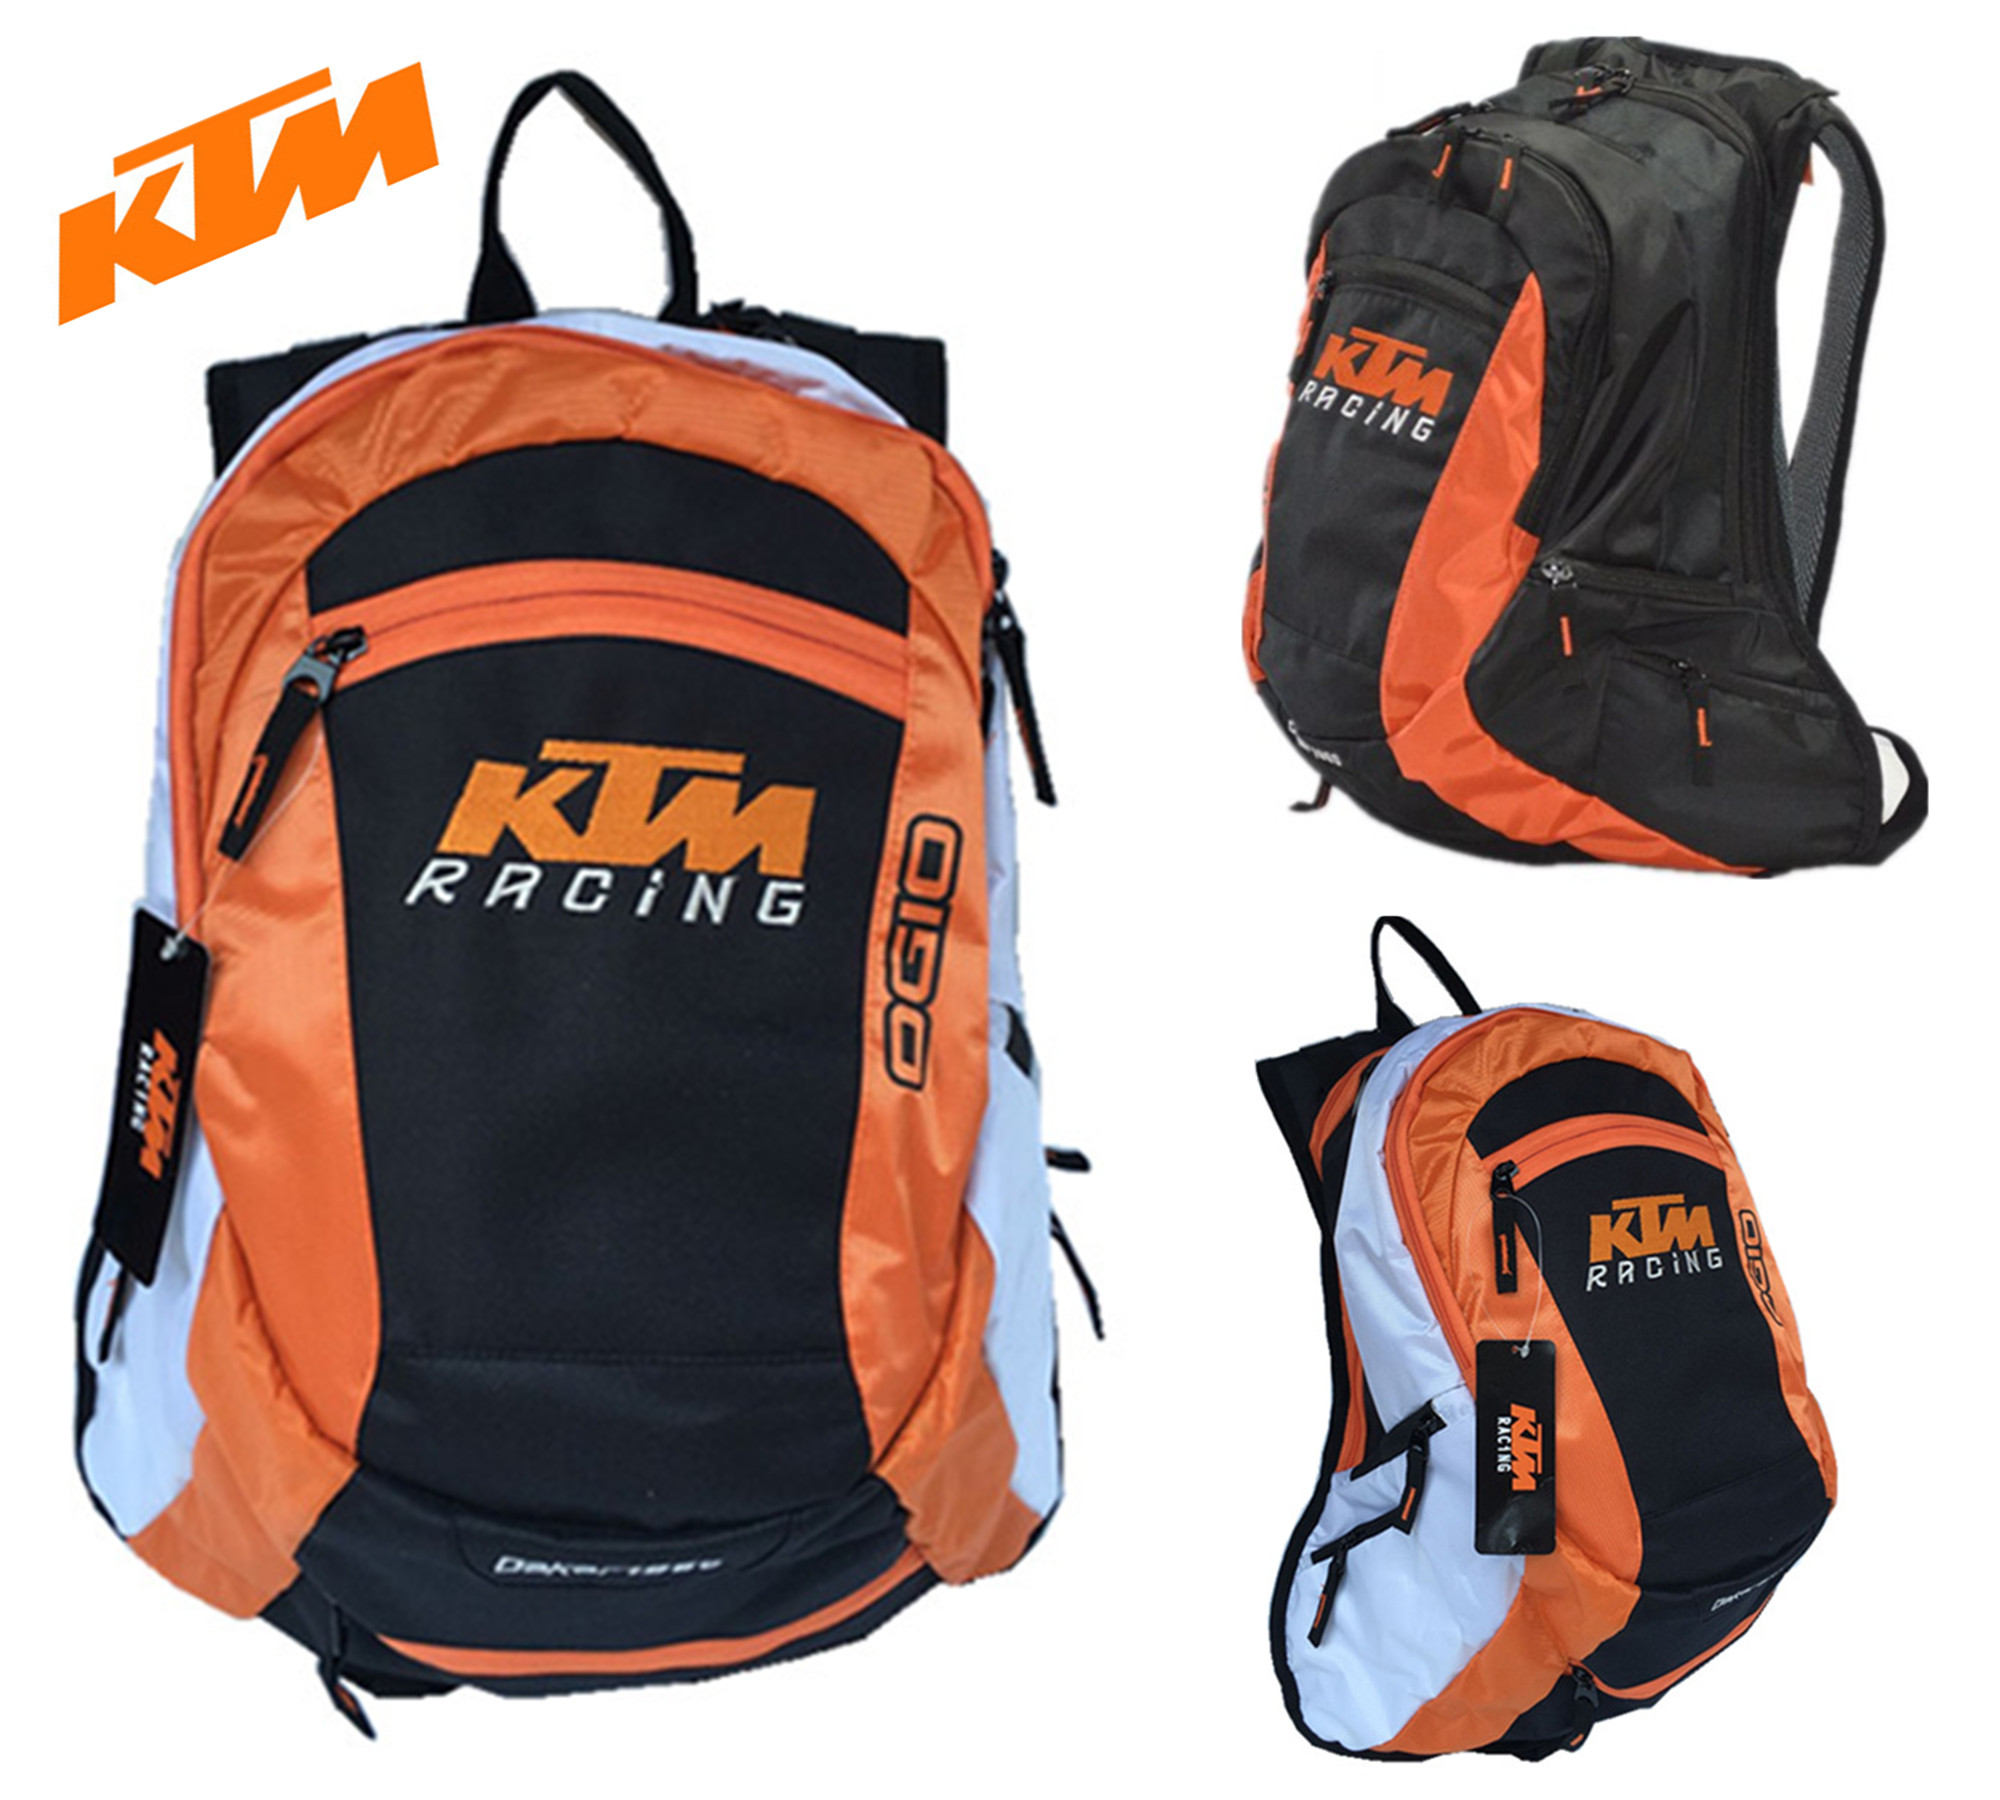 Backpack Riding Bag Car Motorcycle Travel Outdoor Bike Cross Country